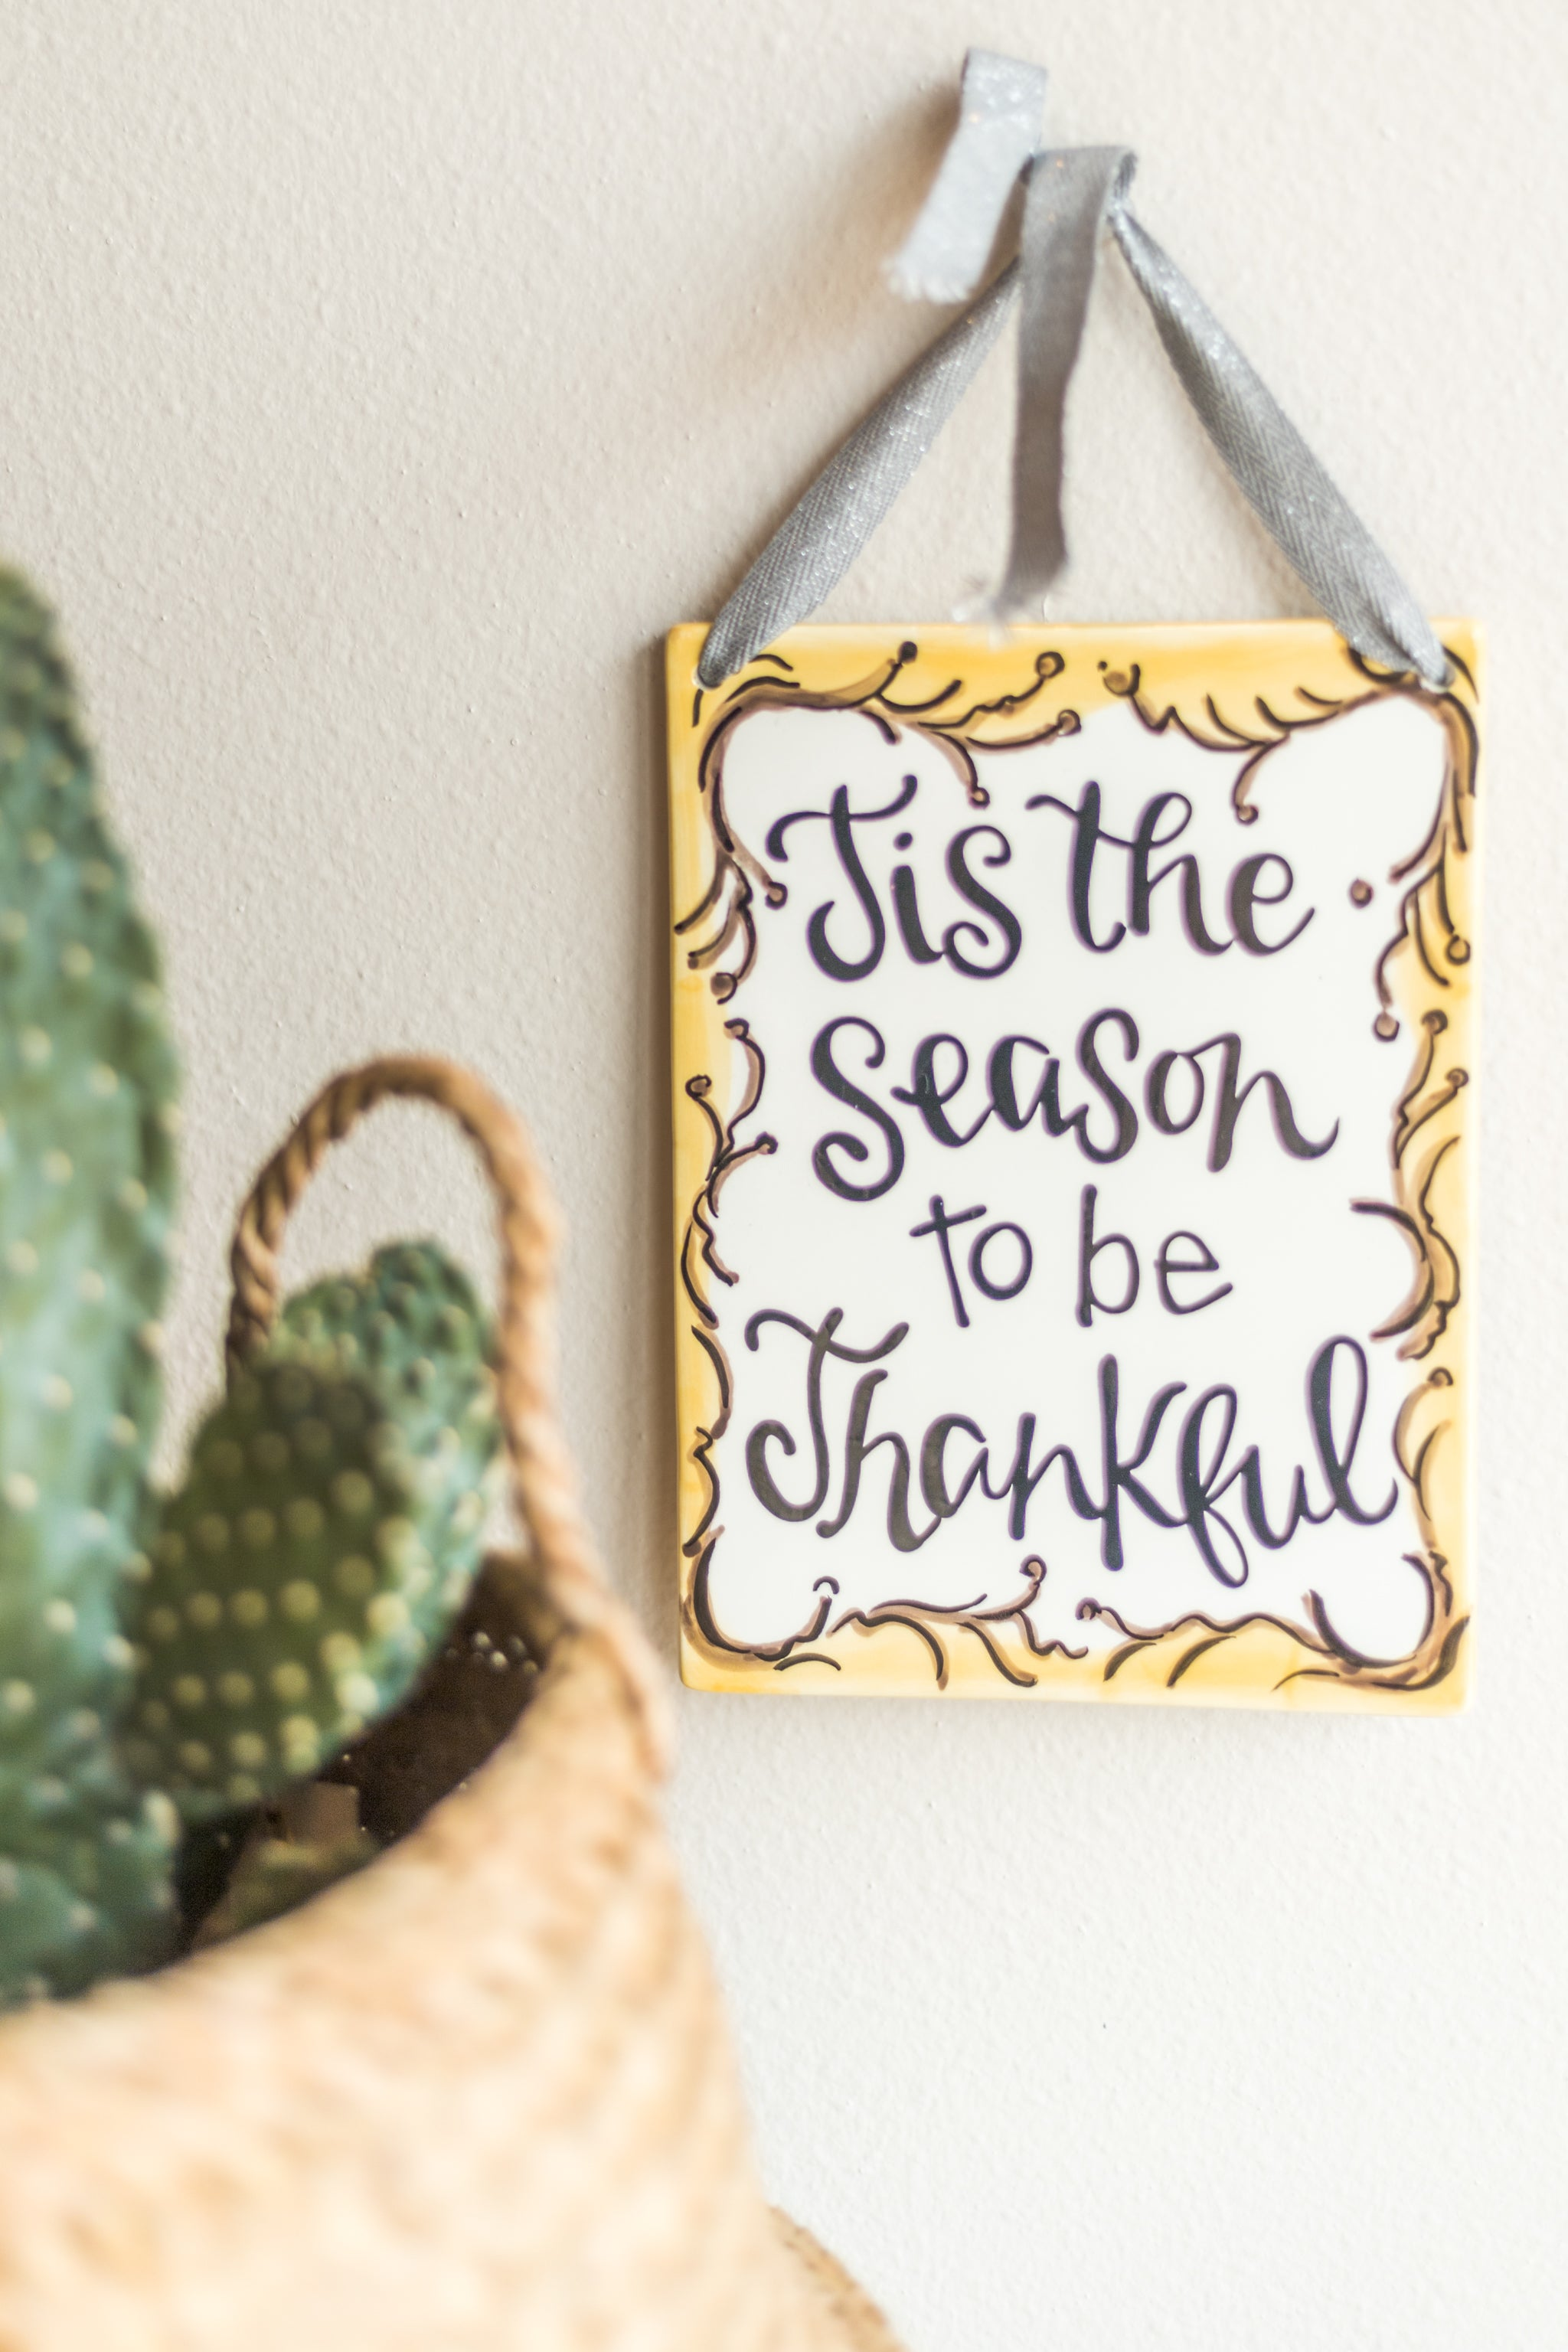 Tis the Season 8x6 Hanging Tile